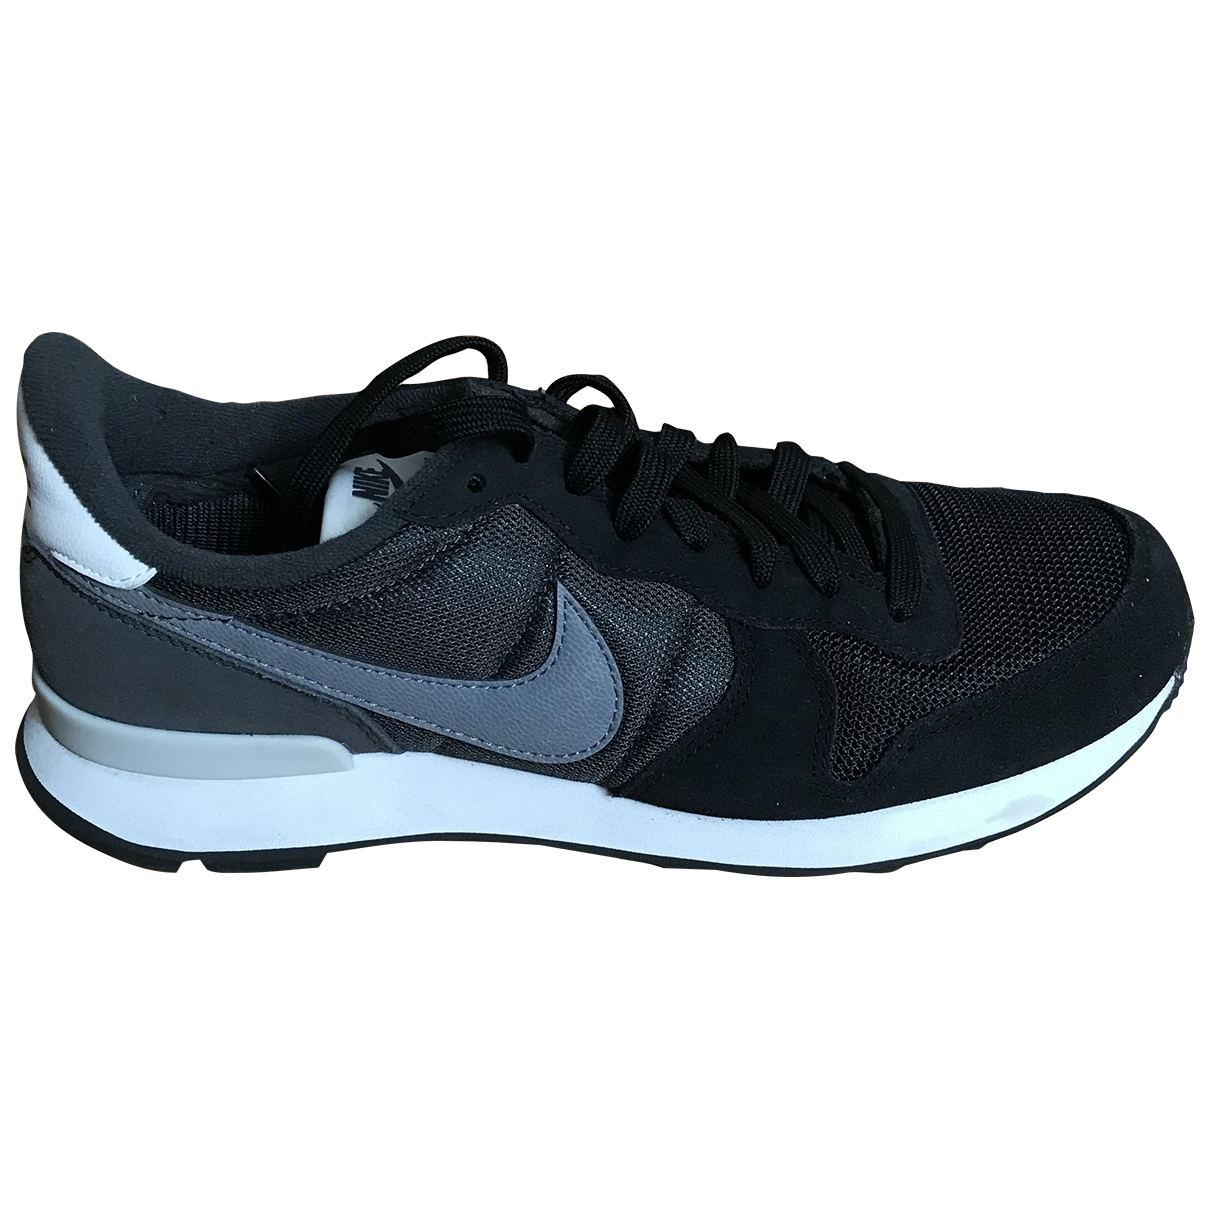 Nike Internationalist Black Trainers for Women 39 EU